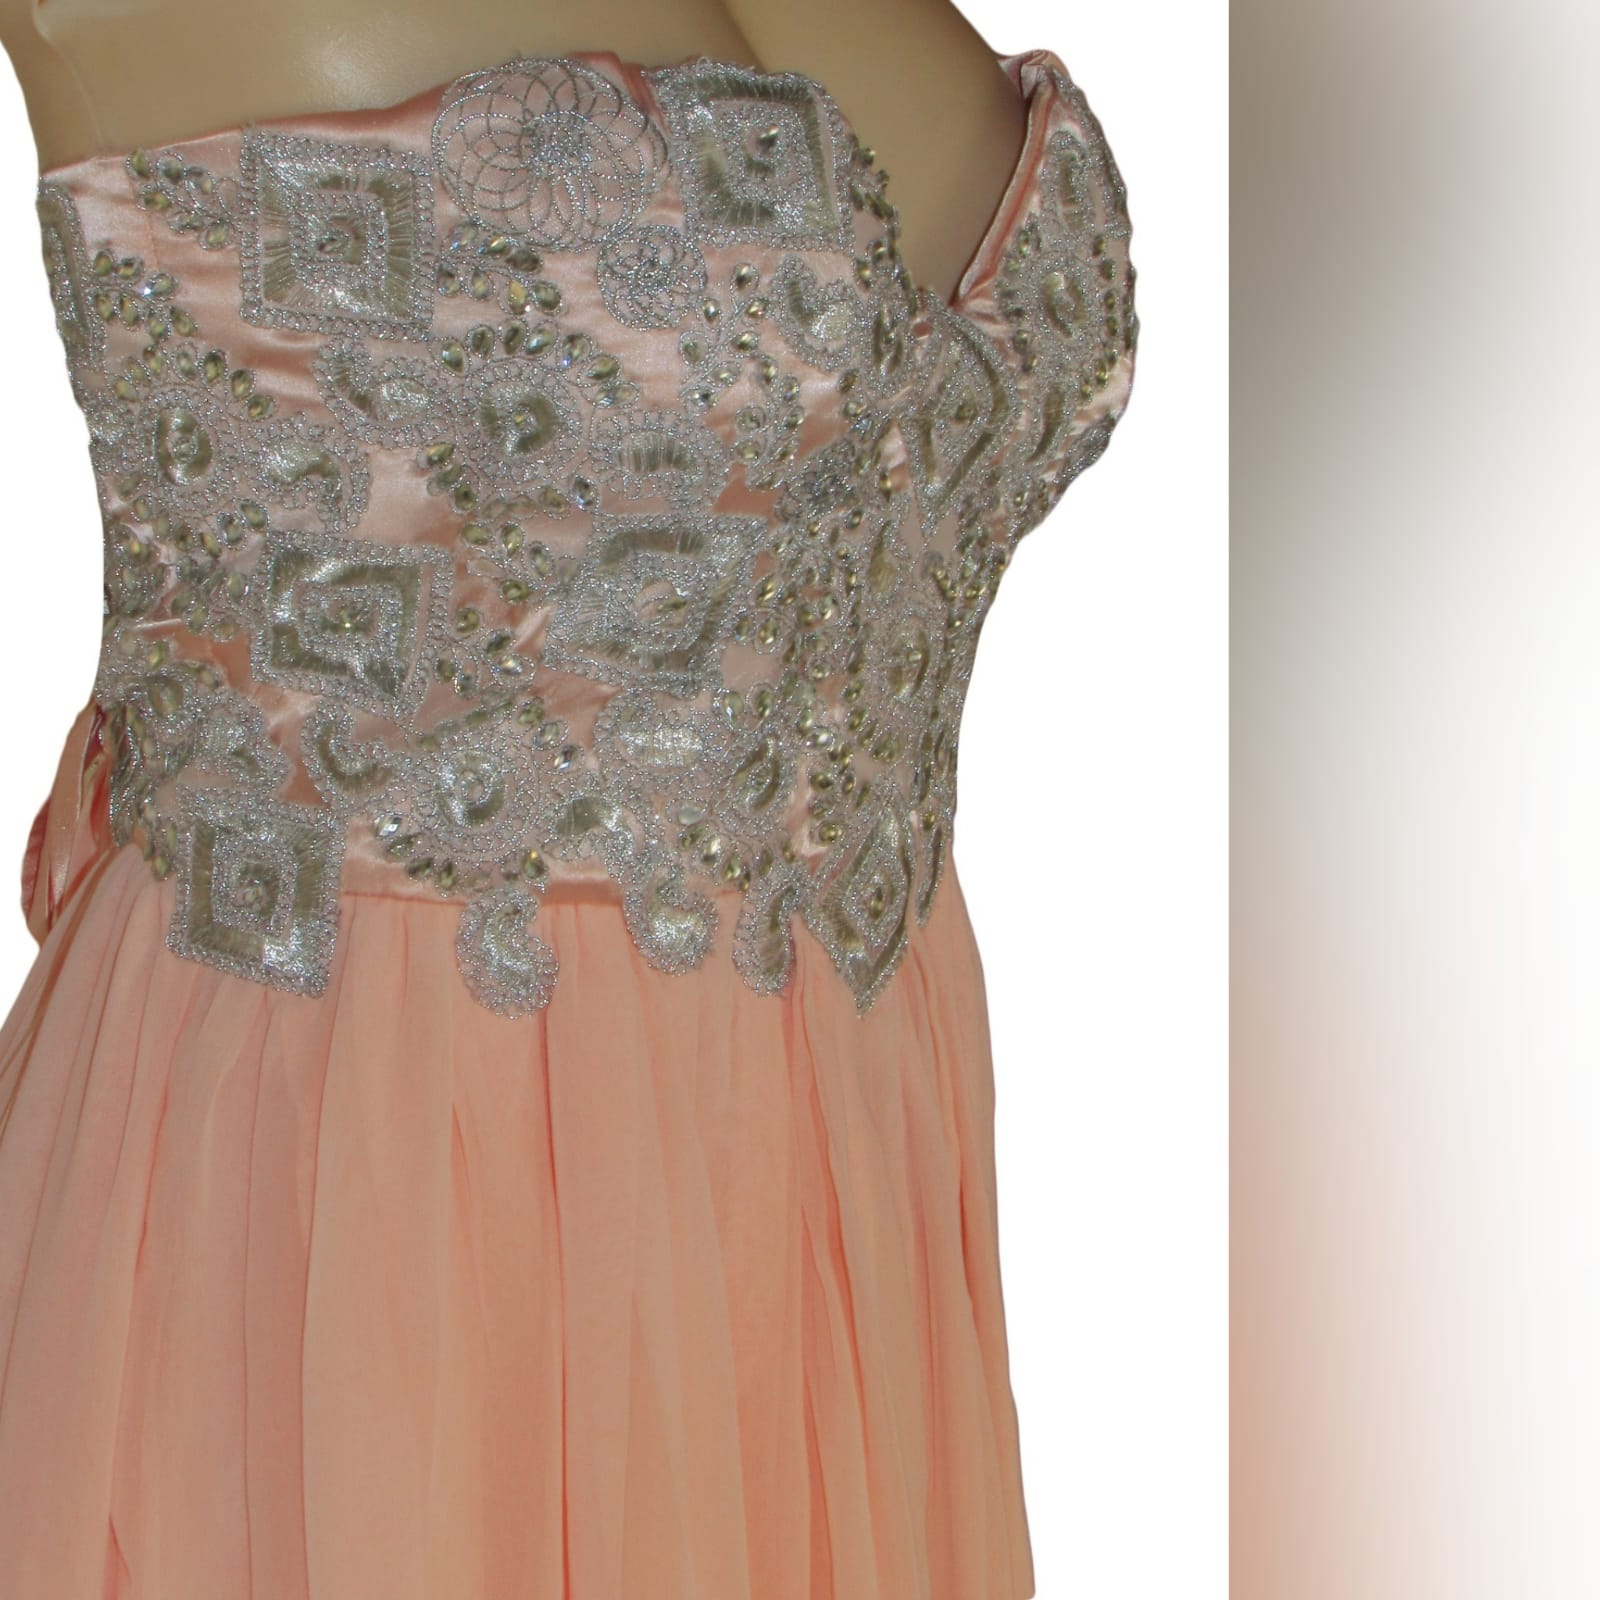 Peach and silver fun prom dress 3 peach and silver fun prom dress. Bodice detailed with appliques and beads, with a lace-up back. Bottom with gathered chiffon and an overlayer opened in front.